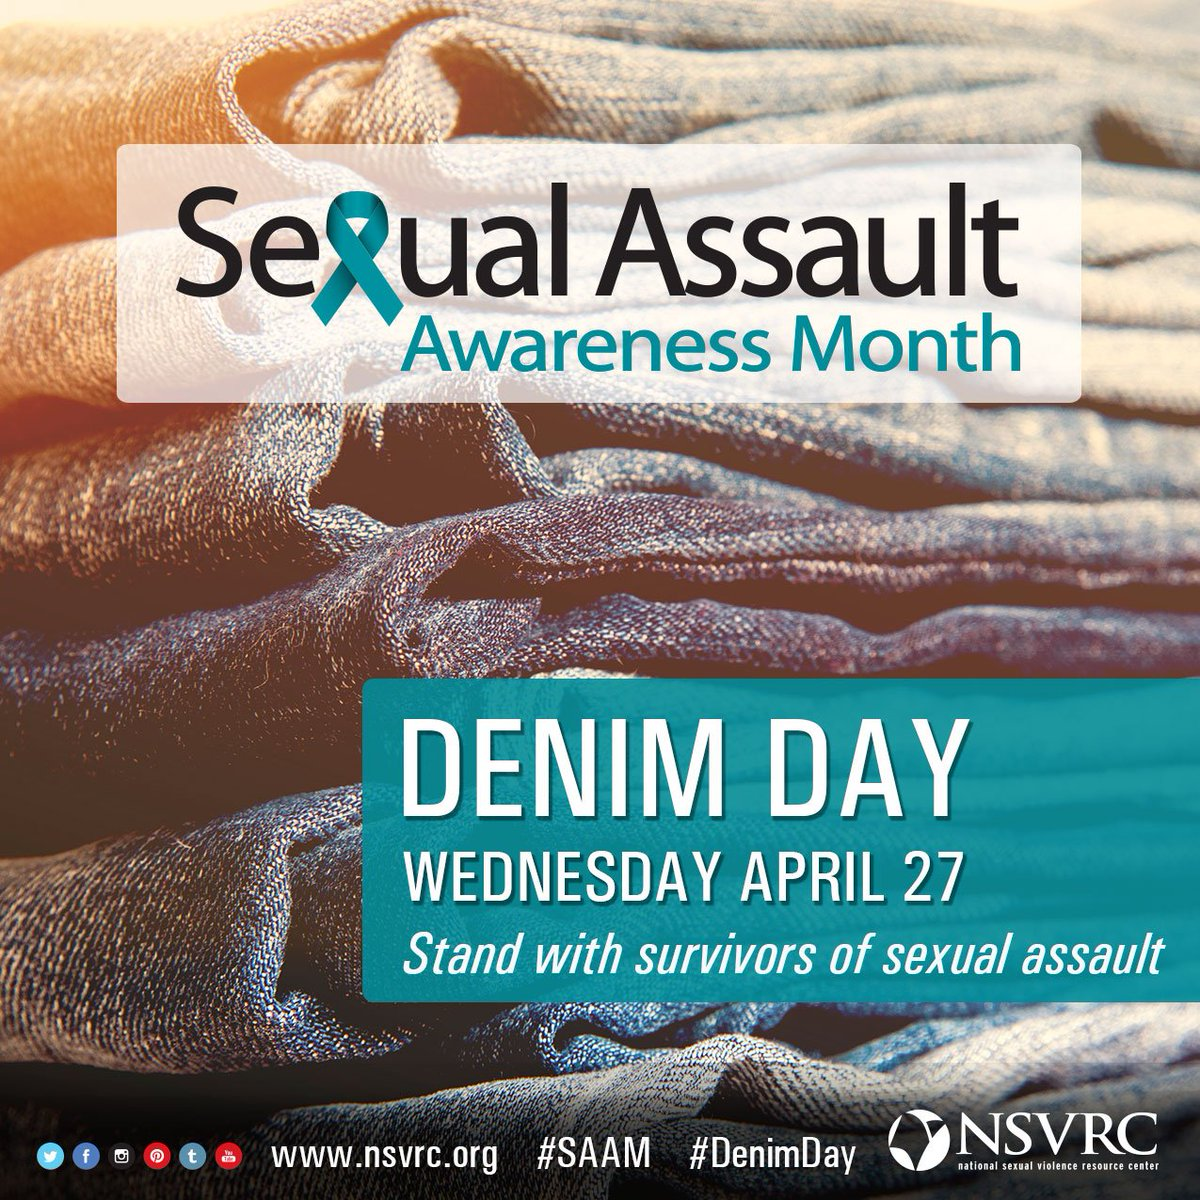 4/27: Today is #DenimDay! Remember: what someone is wearing is never a justification for #SexualAssault. #SAAM https://t.co/C4SG7BMMJ7